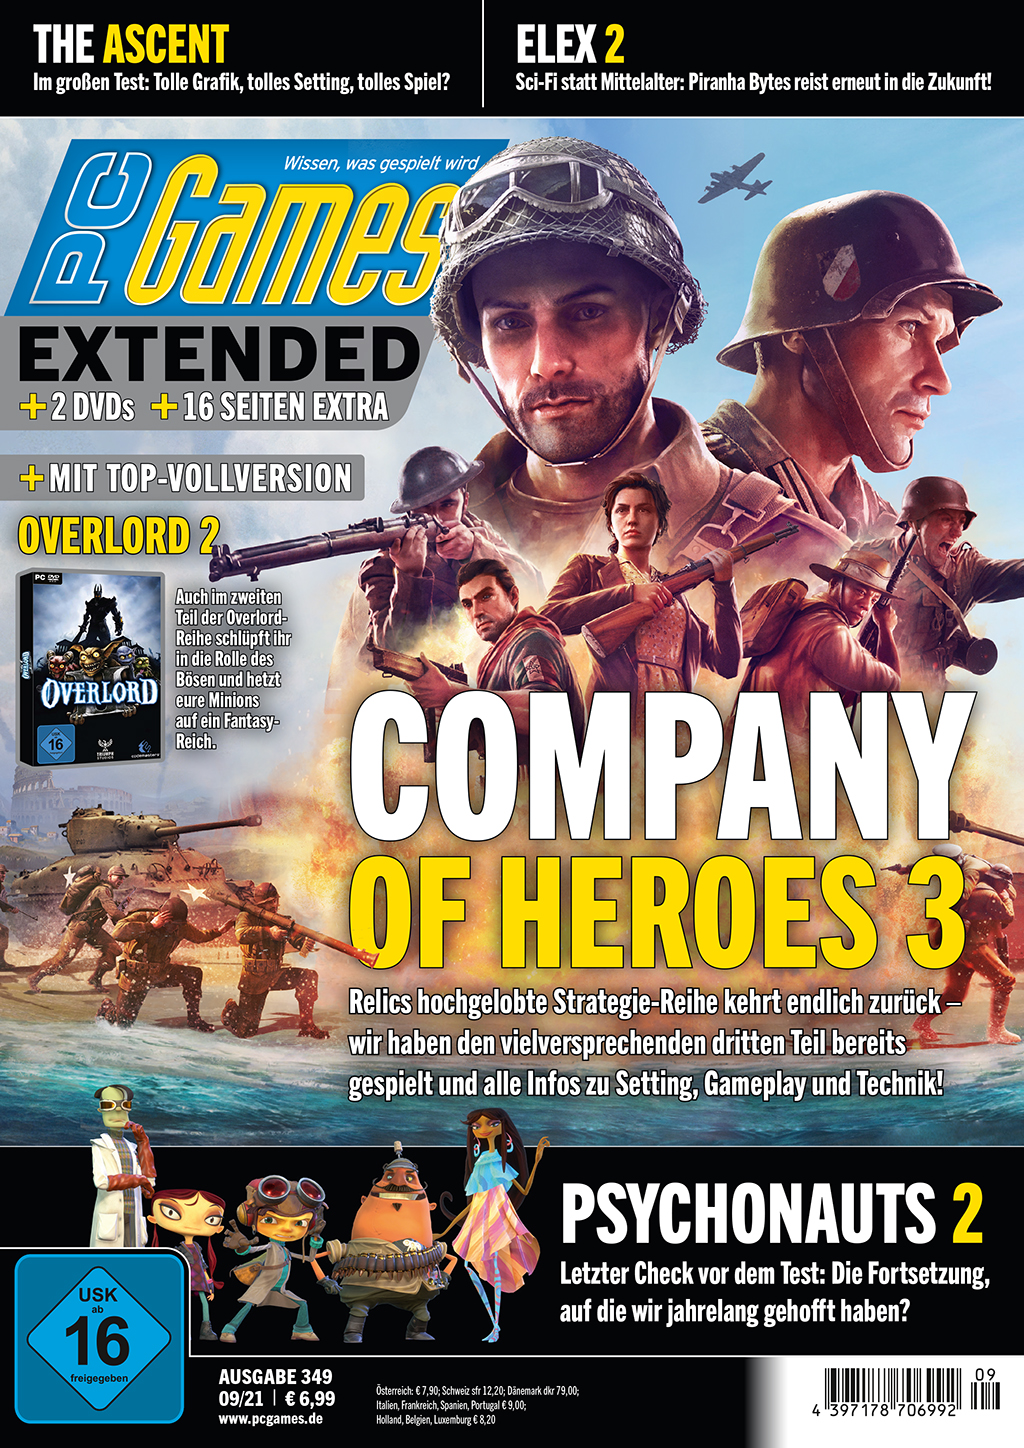 PC Games 09/21 with Company of Heroes 3, Psychonauts 2, Elex 2 and many more!